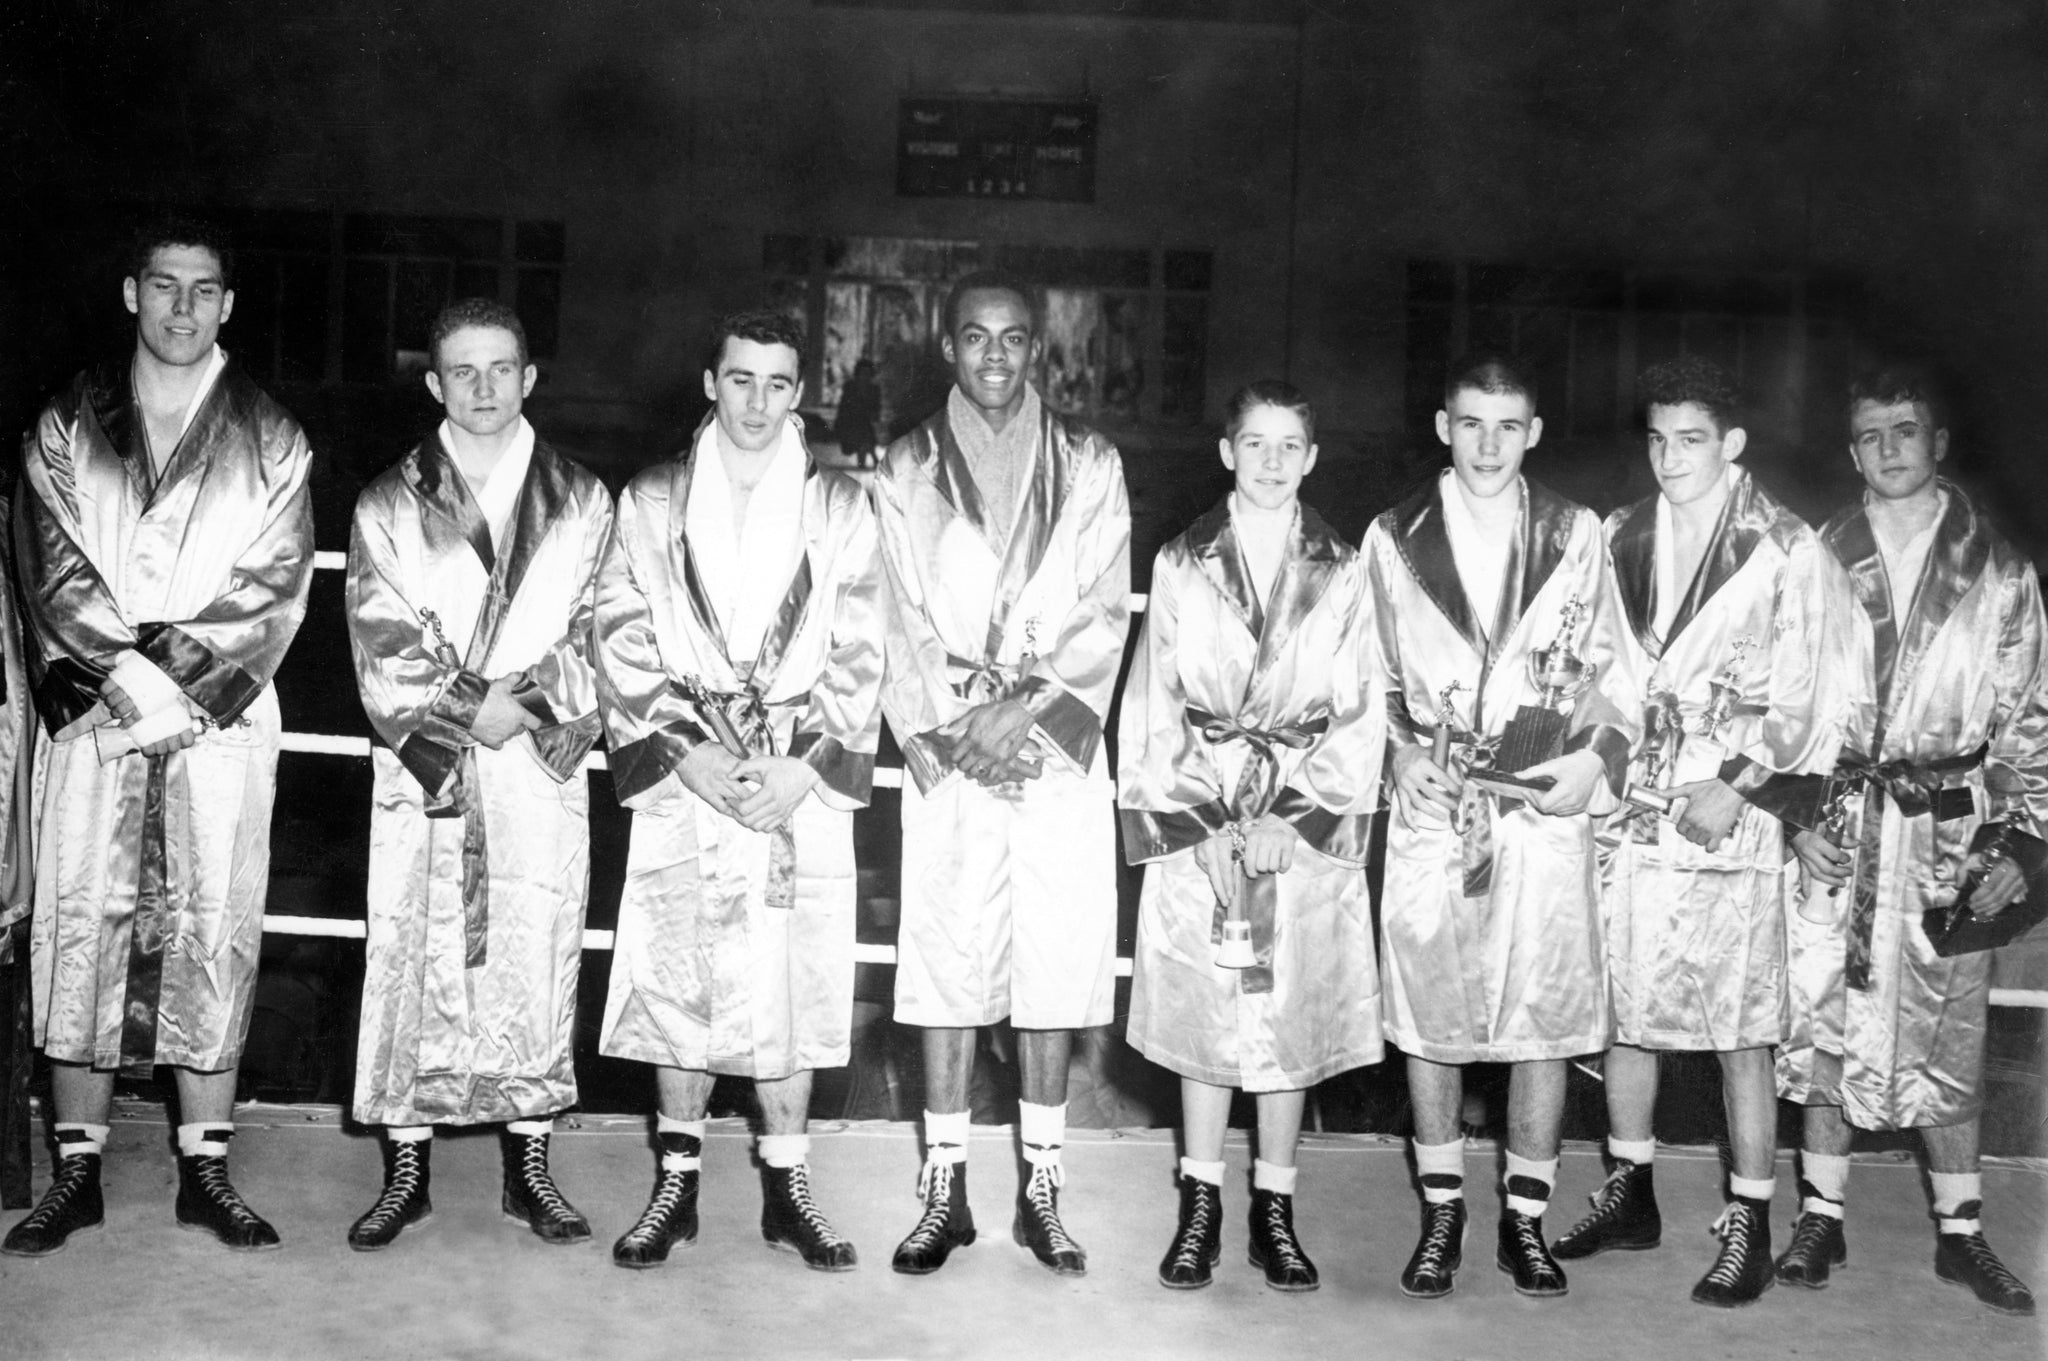 Competitors of the Golden Gloves Boxing Tournament at the Shrine Auditorium, 1958. Francis Turley is second from left. Wayne Bell is third from right. -- COURTESY WAYNE BELL